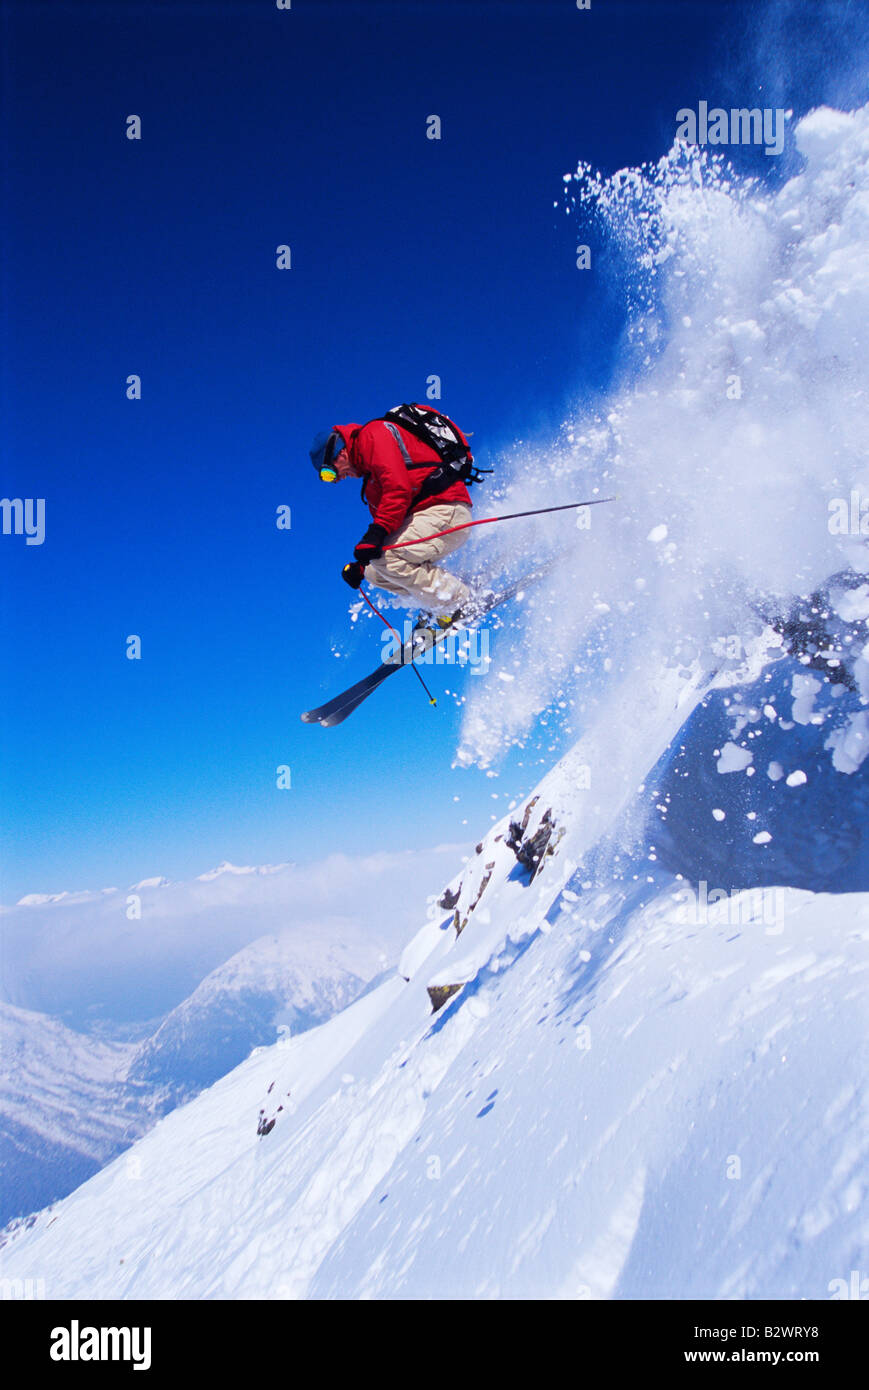 Skier jumping on snowy hill Stock Photo